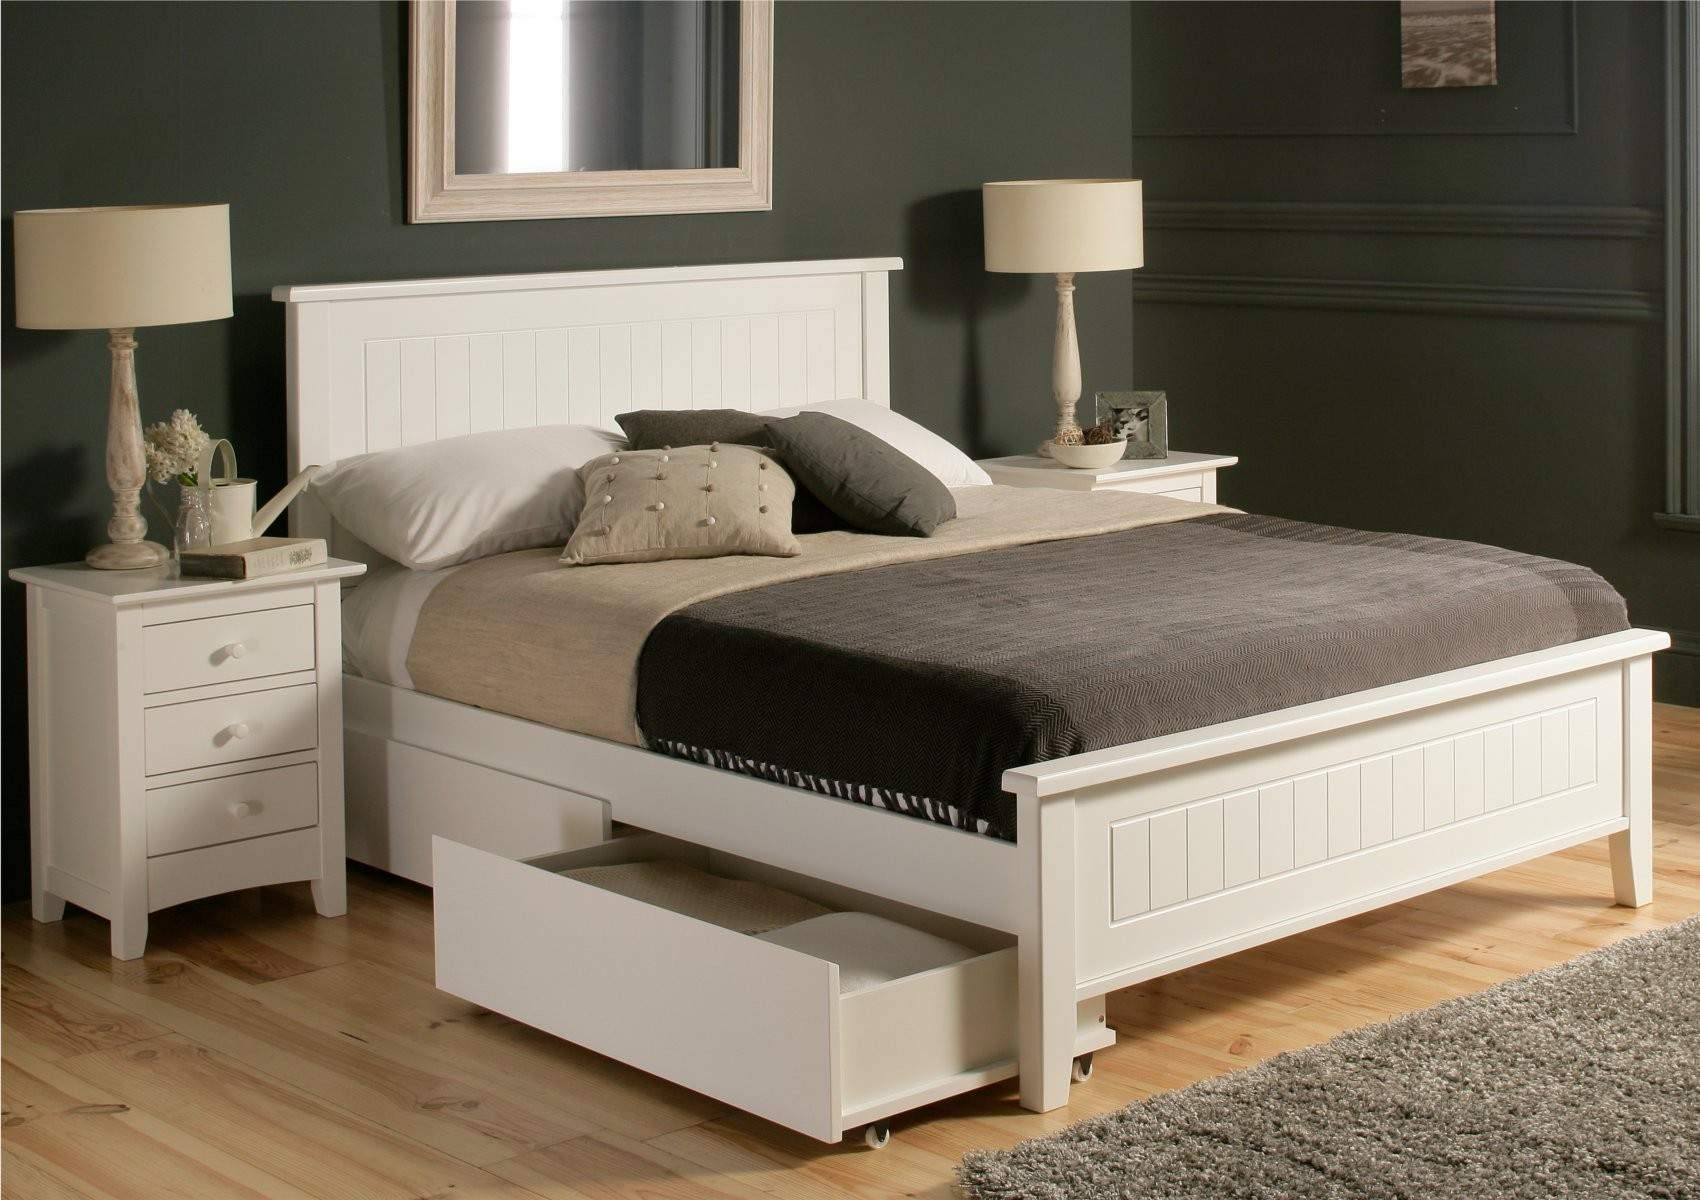 Queen Bed Frames With Storage Underneathbeds with storage drawers underneath